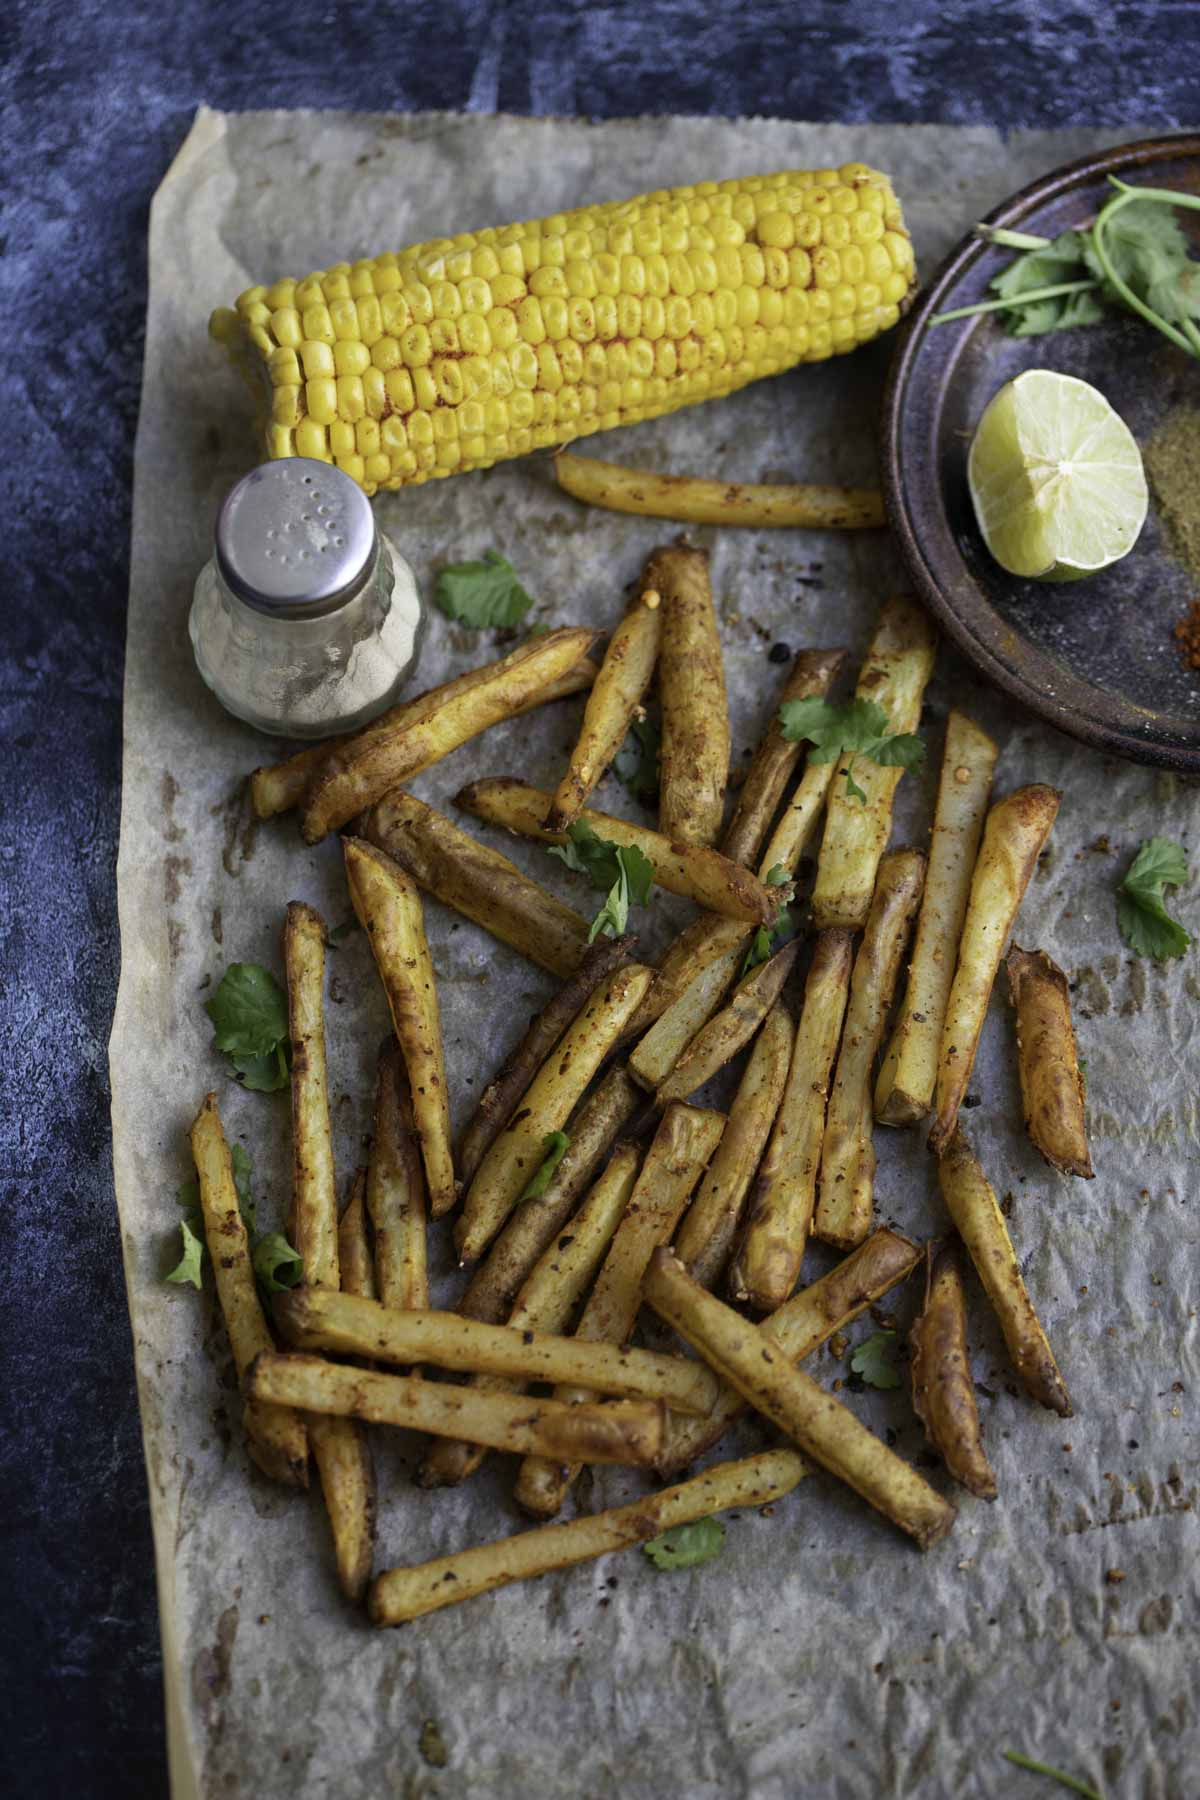 baked masala fries on a baking paper. pepper, corn on the cob and a lemon wedge in the background